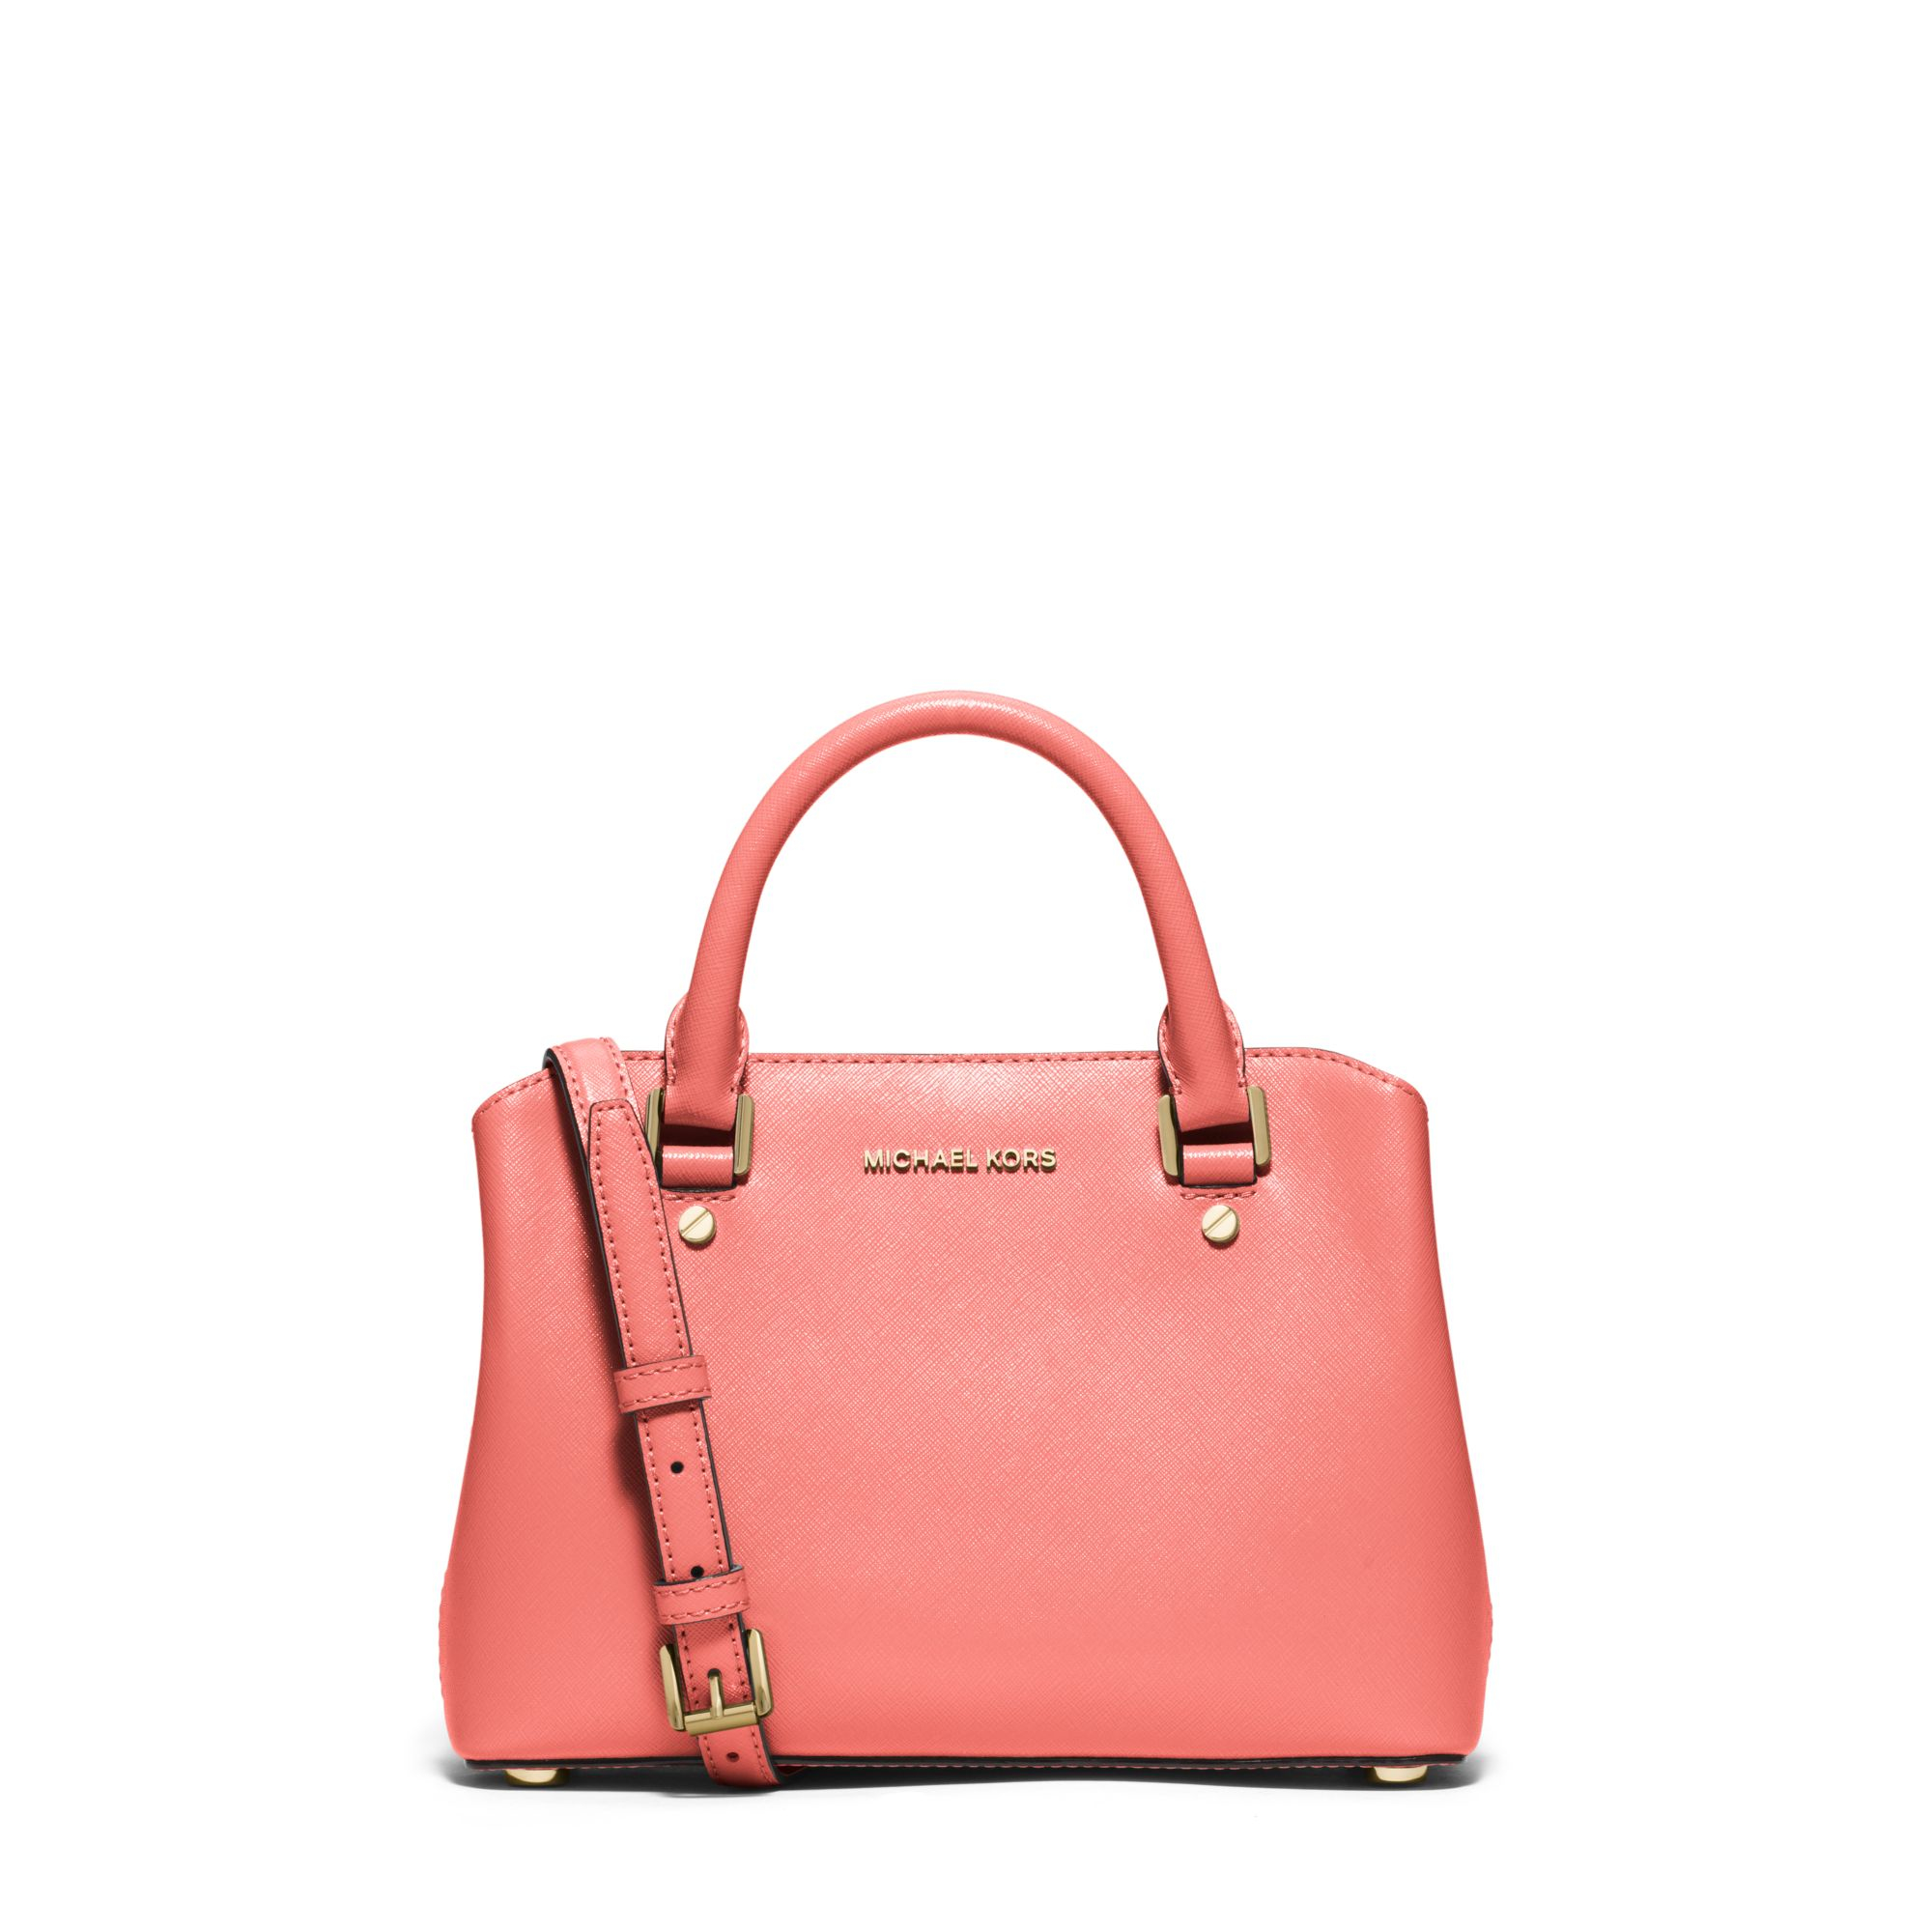 81ed6dcb5fe Michael Kors Savannah Small Patent Saffiano Leather Satchel in Pink ...